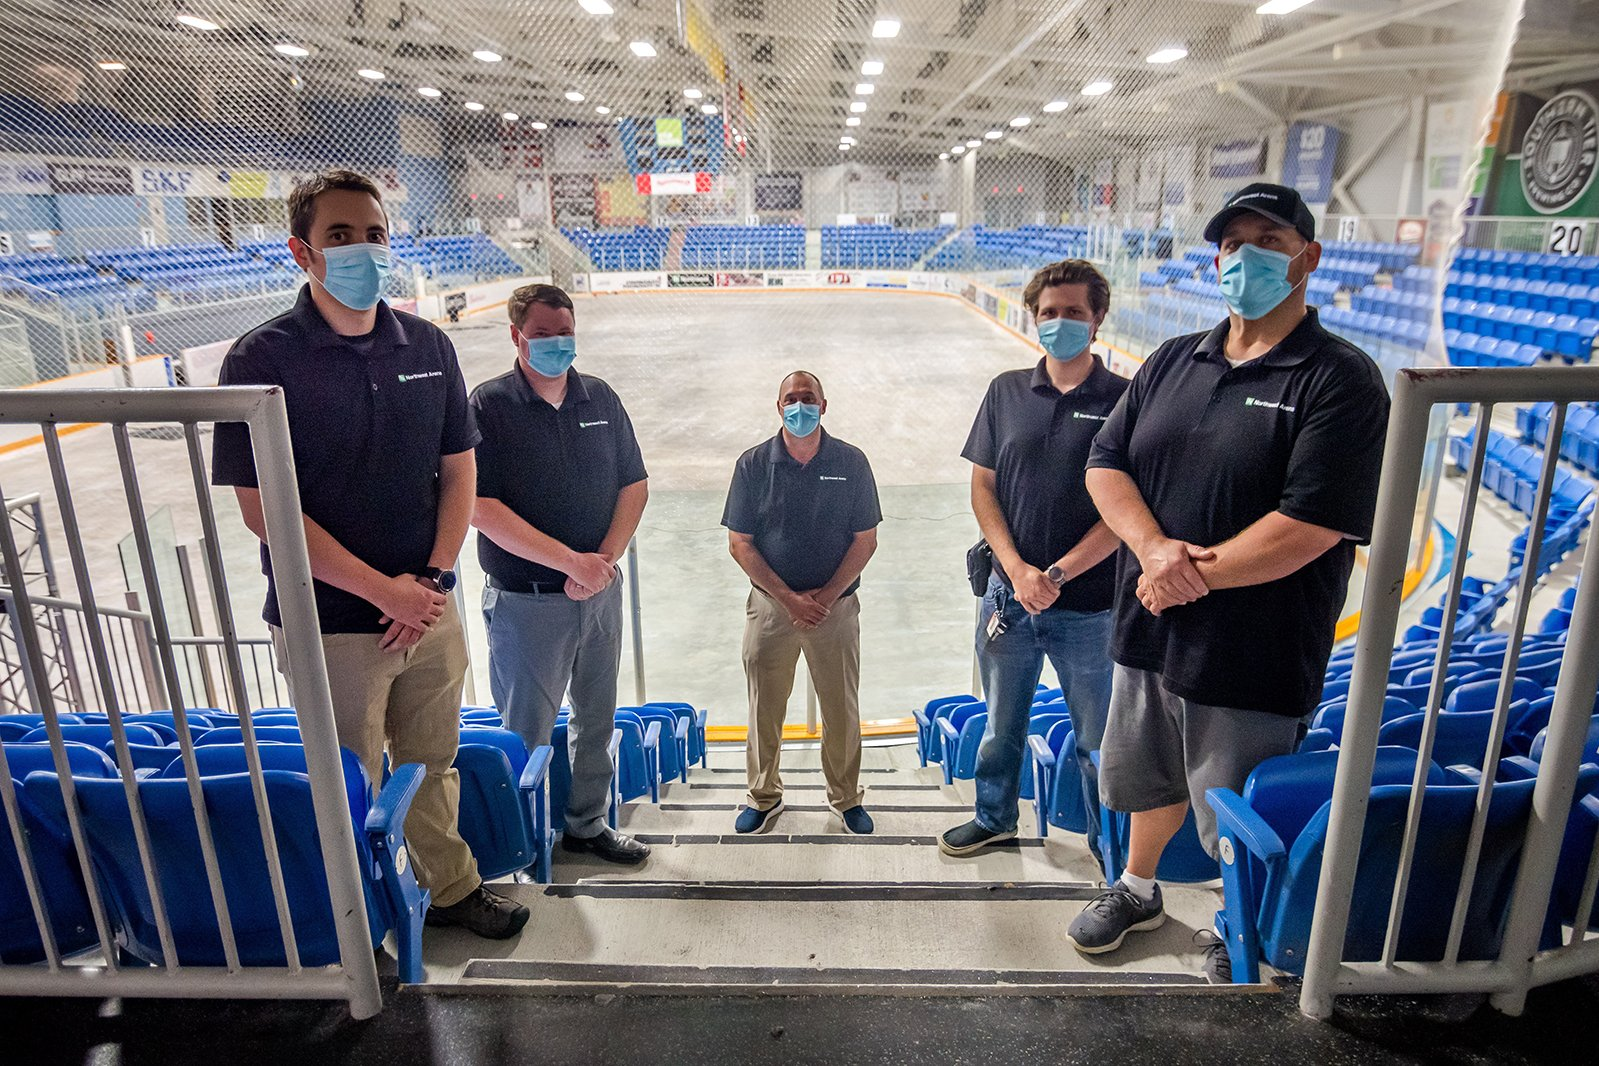 Staff at the Northwest Arena posing on the stairs of ice Rink A, wearing masks